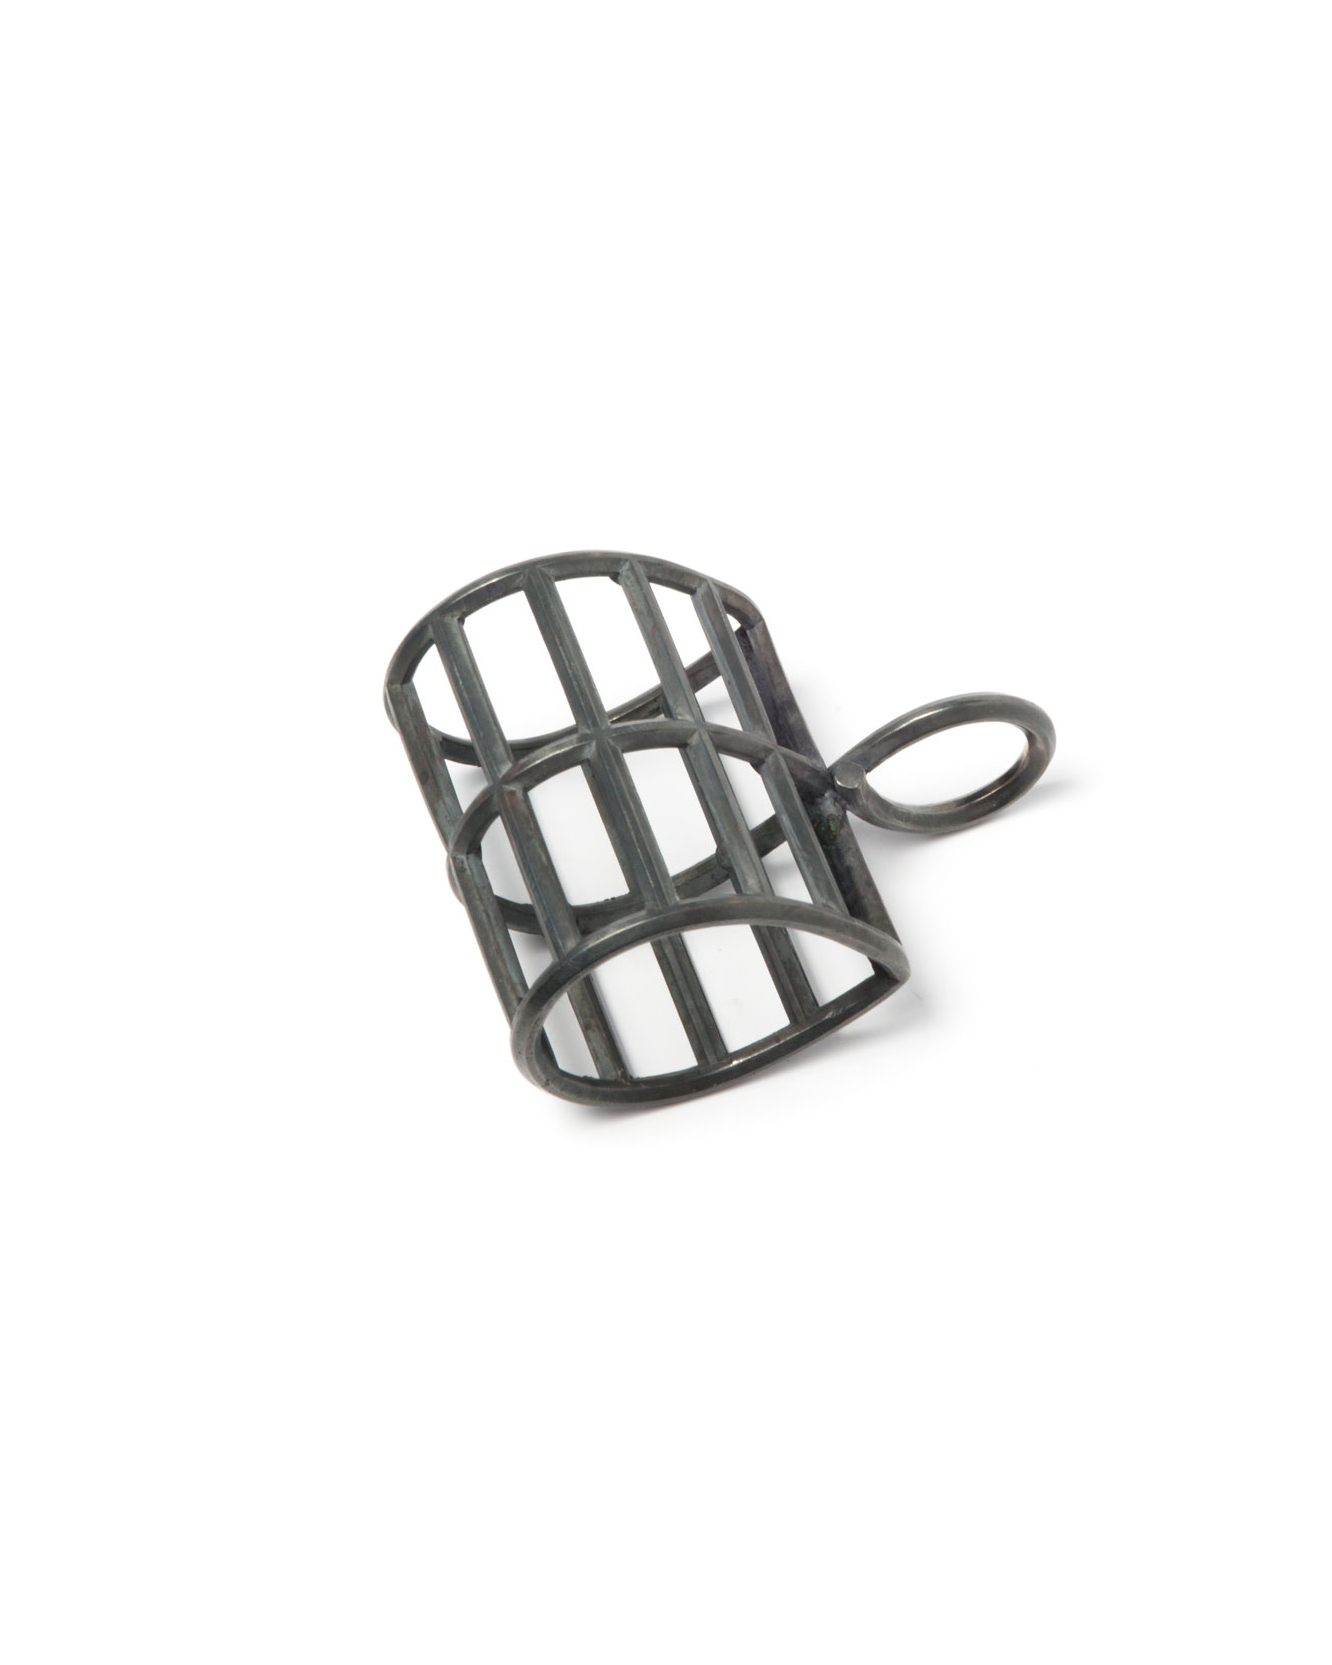 Winfried Krüger, untitled, 2008, ring; oxidised silver, 80 x 90 mm, €1575